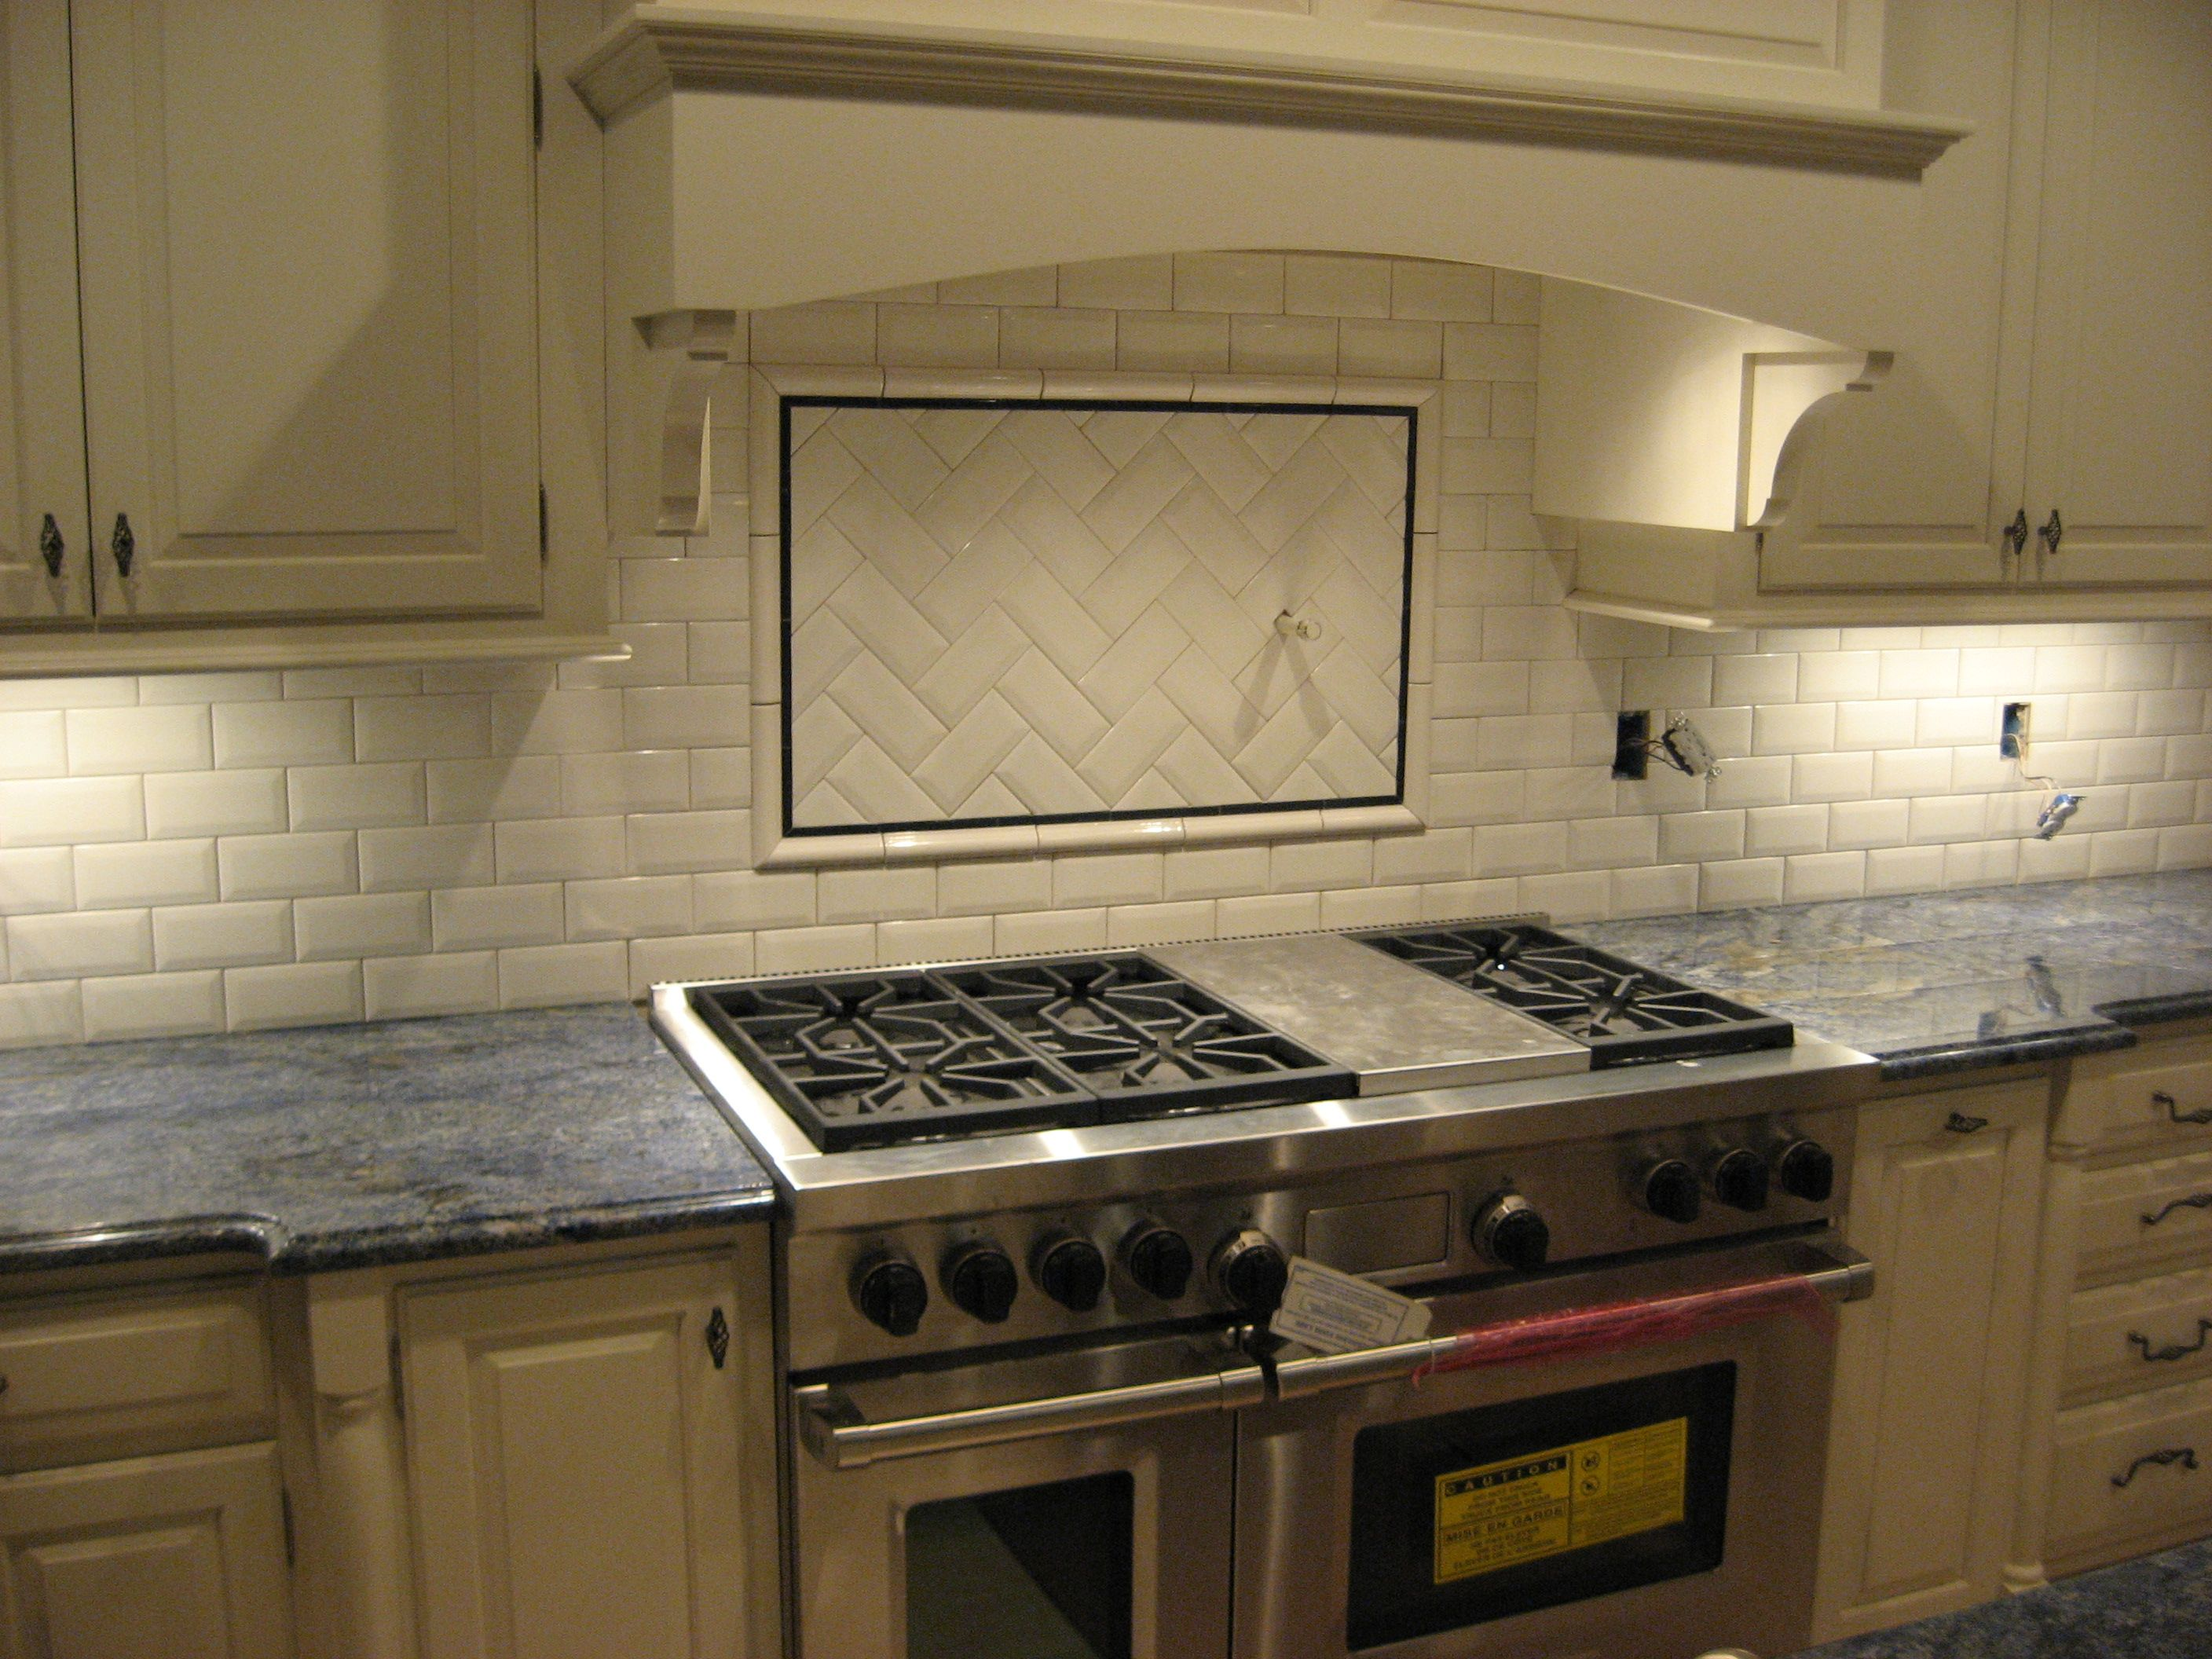 White Subway Tile 3x6 With Chair Rail And A Blue Accent 1 2x6 Liner Bar Inside Frame